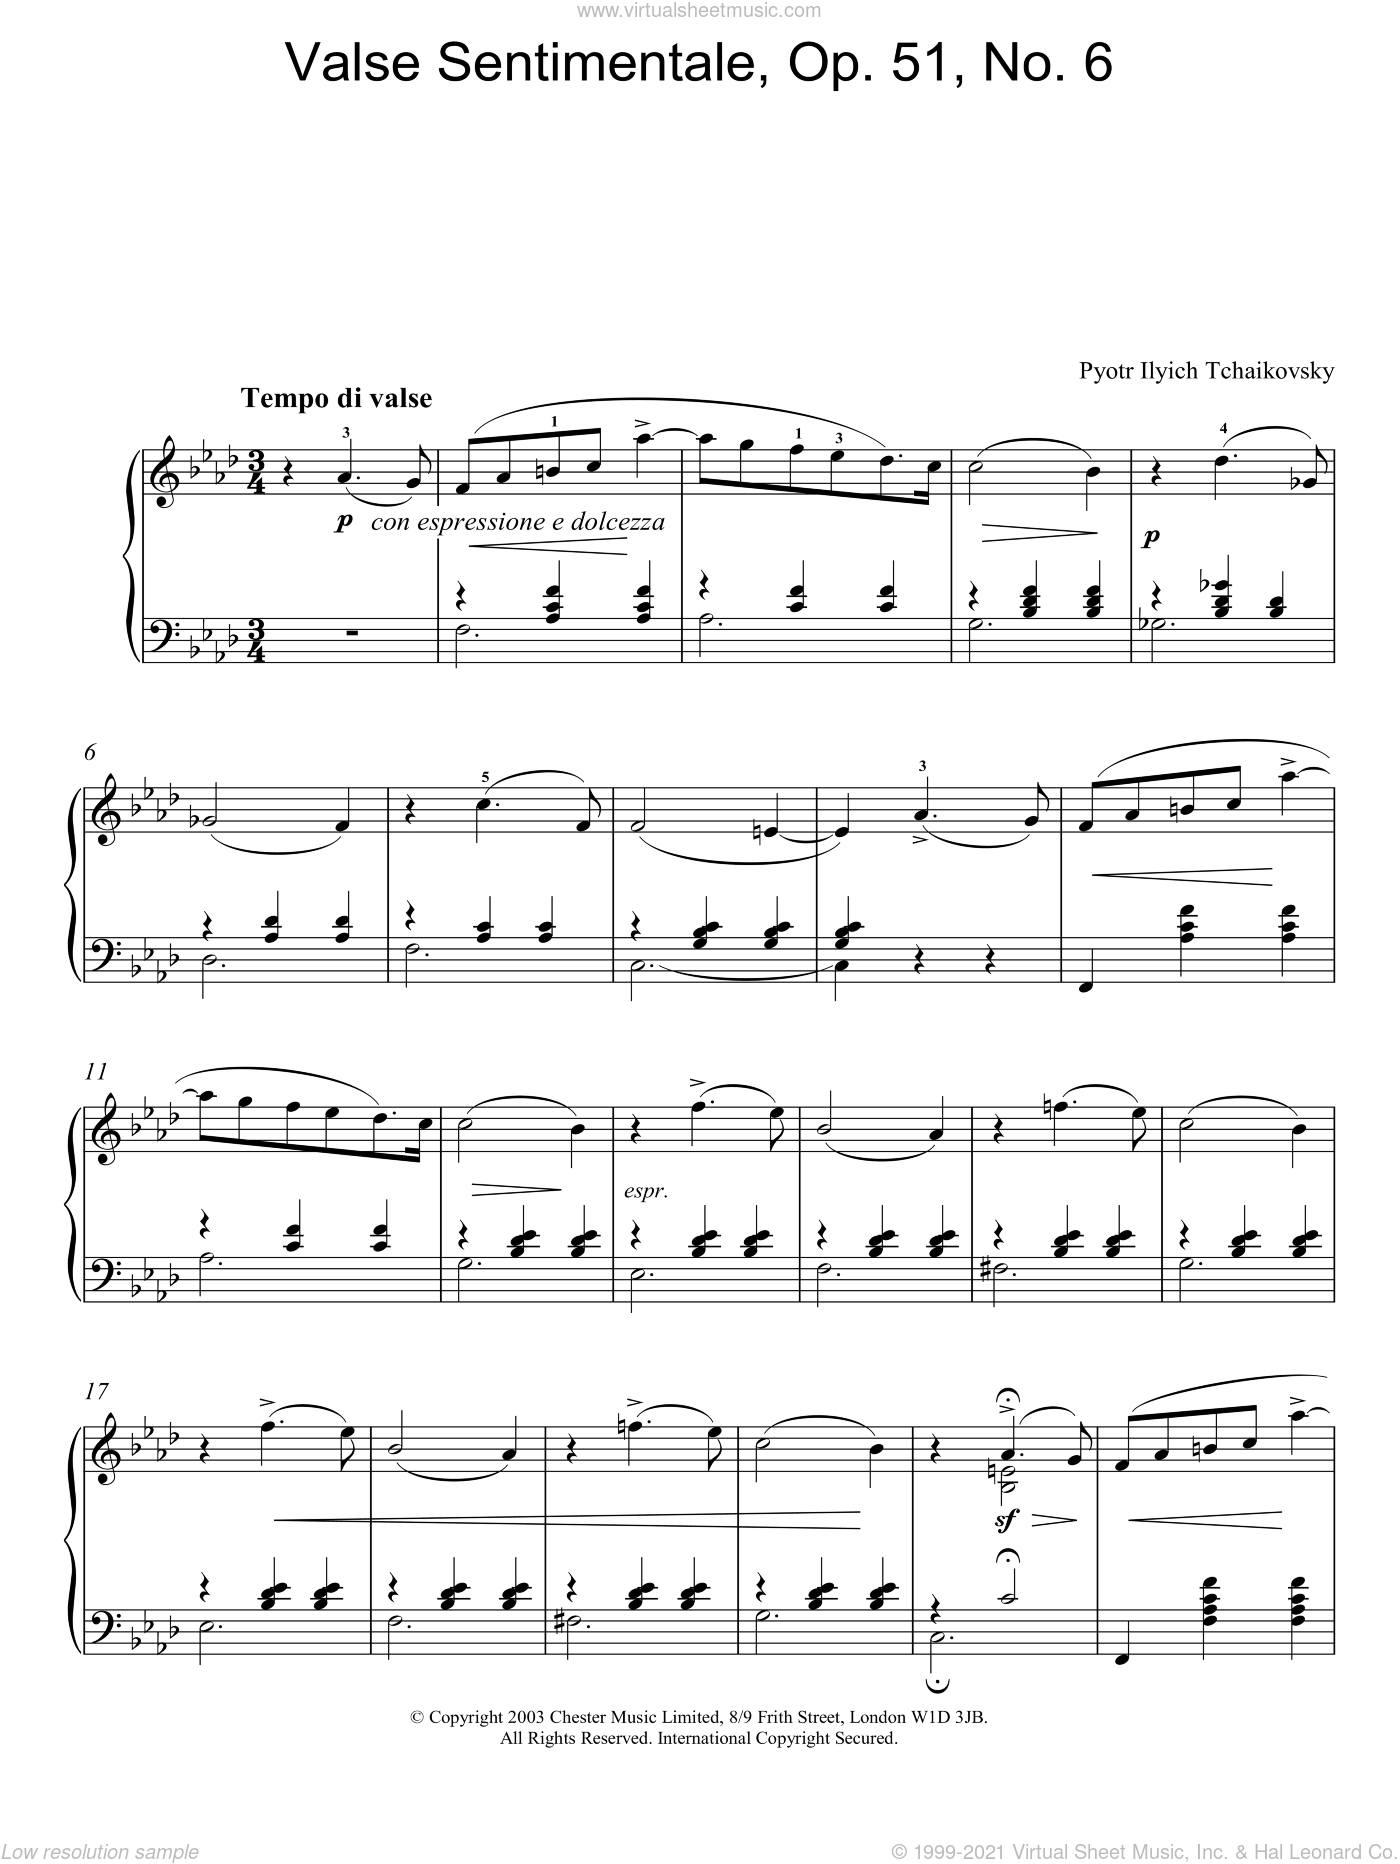 Valse Sentimentale, Op. 51, No. 6 sheet music for piano solo by Pyotr Ilyich Tchaikovsky, classical score, intermediate